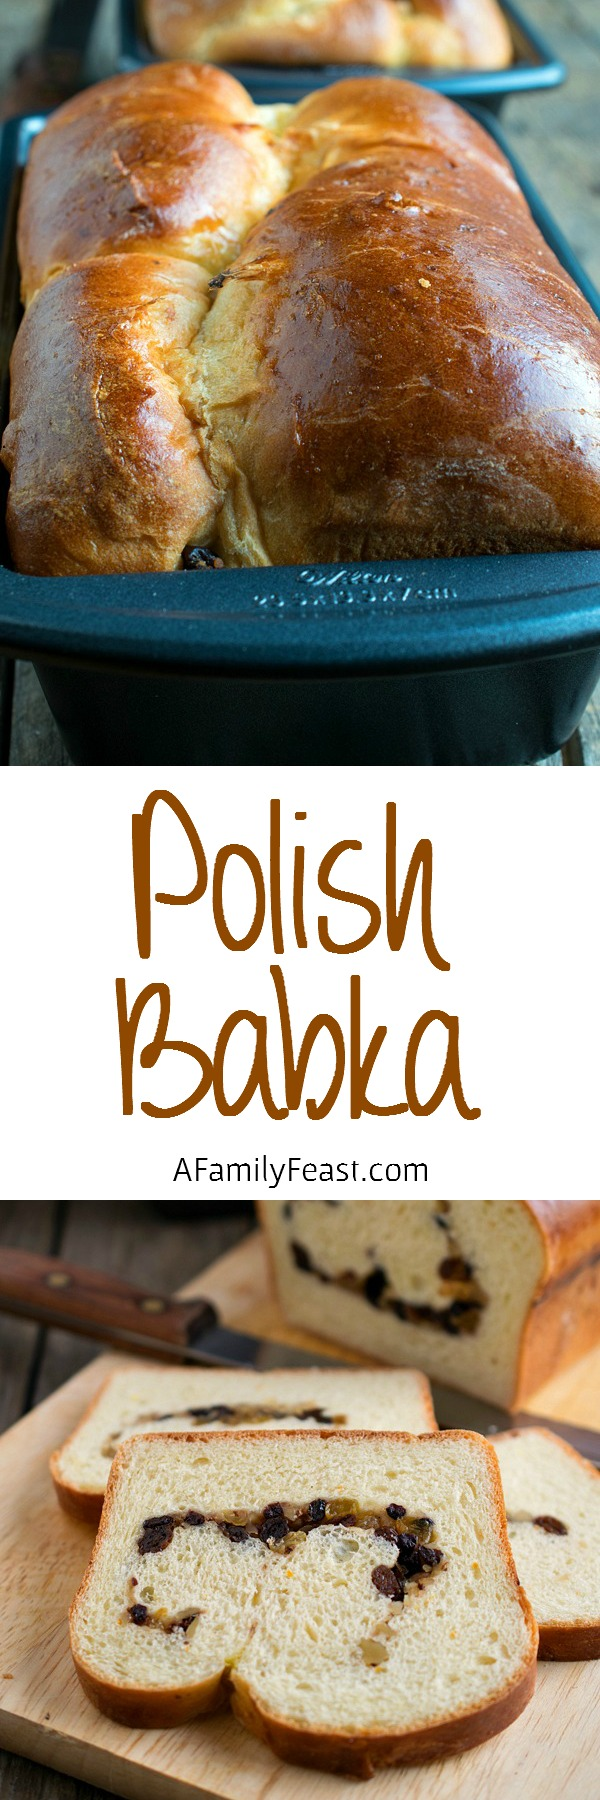 Polish Babka - A traditional bread served on Easter morning.